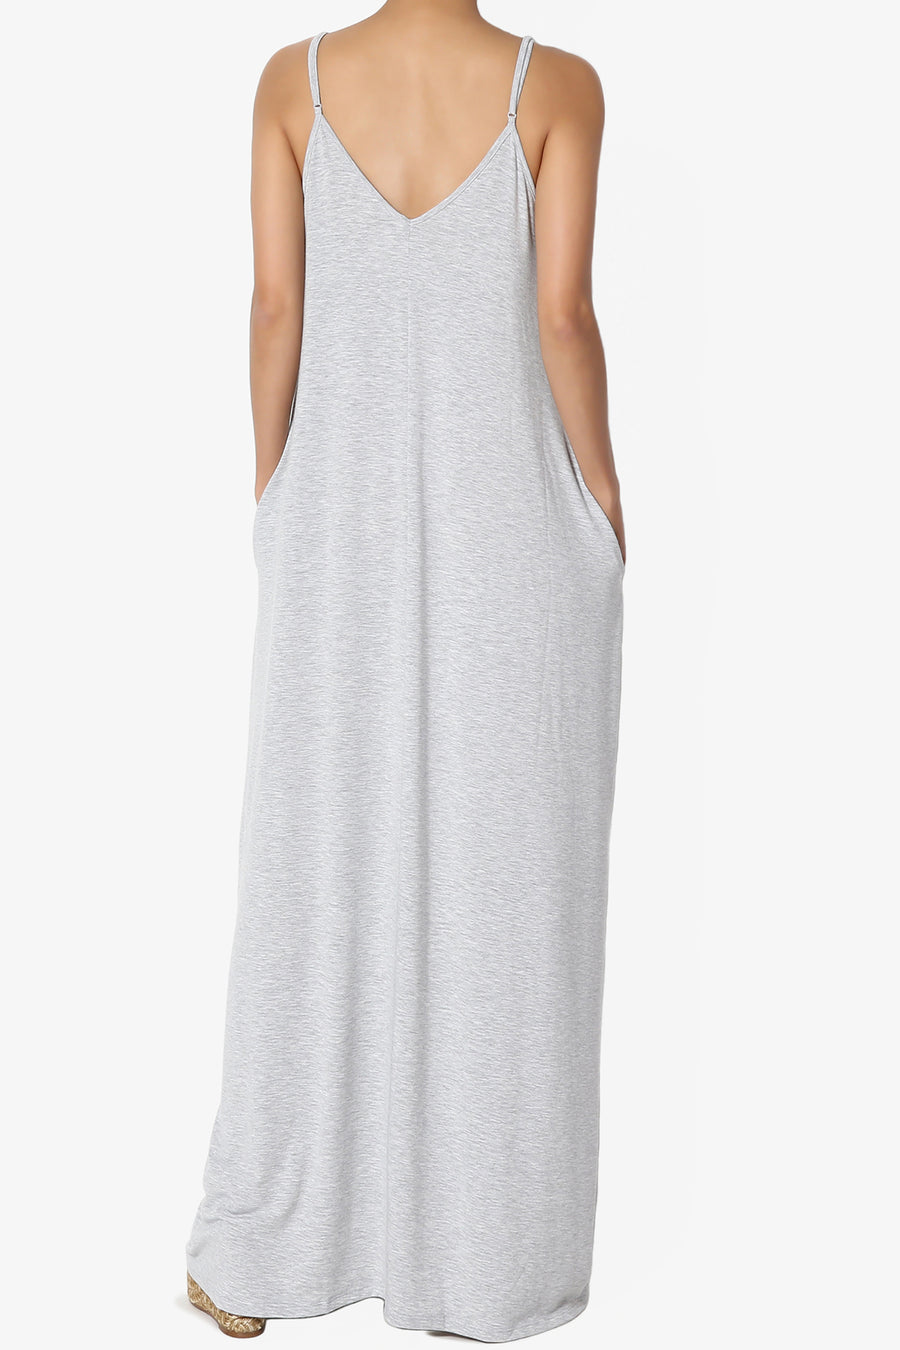 Venus Pocket Cami Maxi Dress ADD COLOR